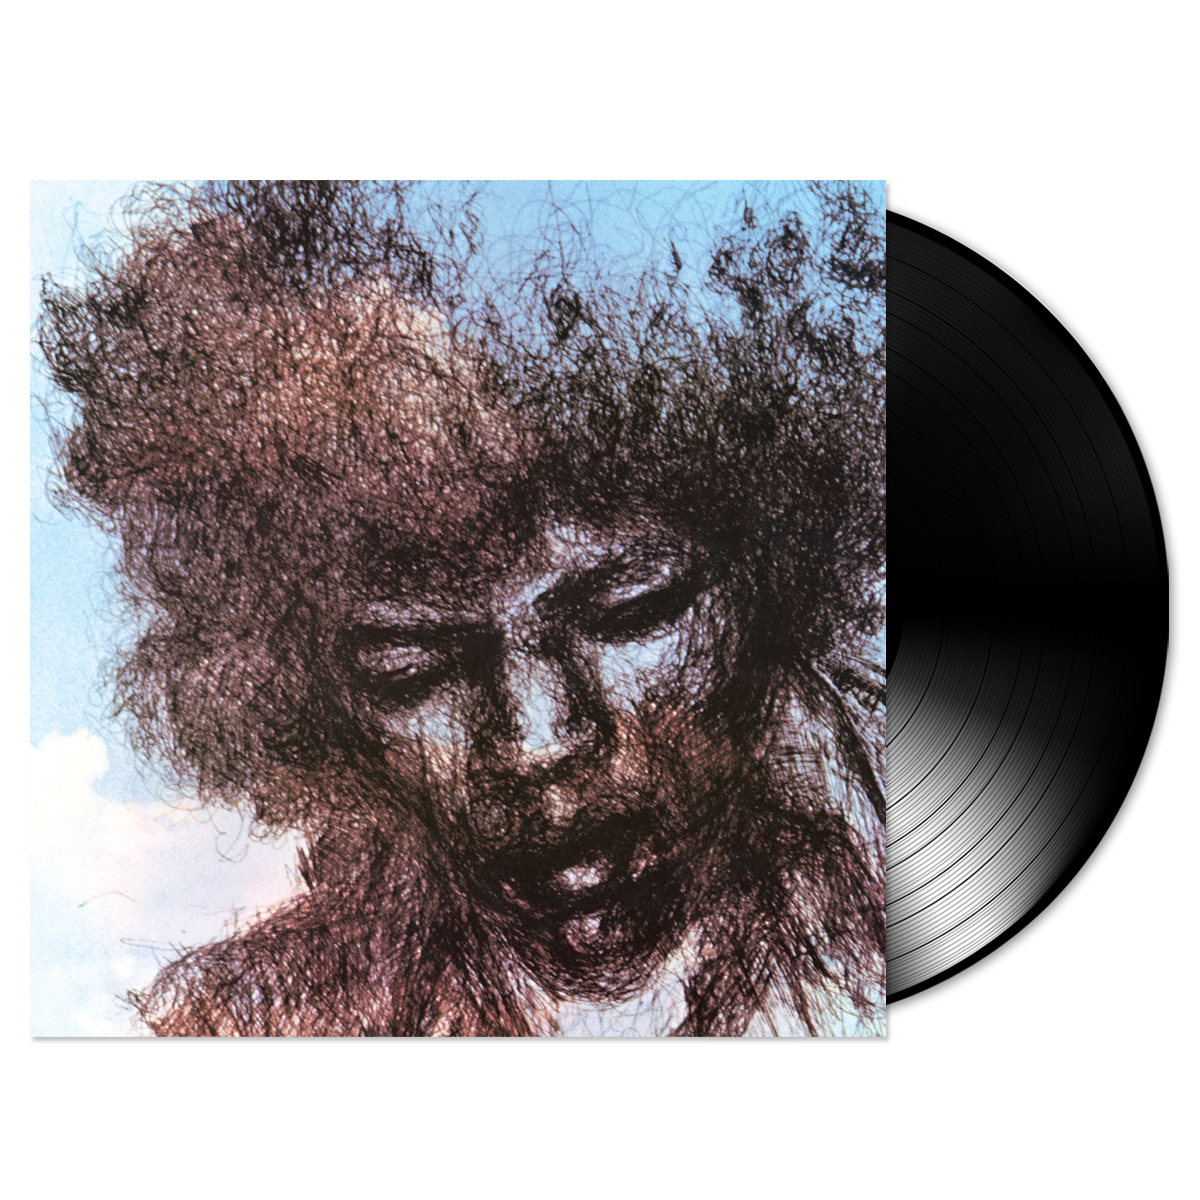 Jimi Hendrix: The Cry of Love LP - Reissue